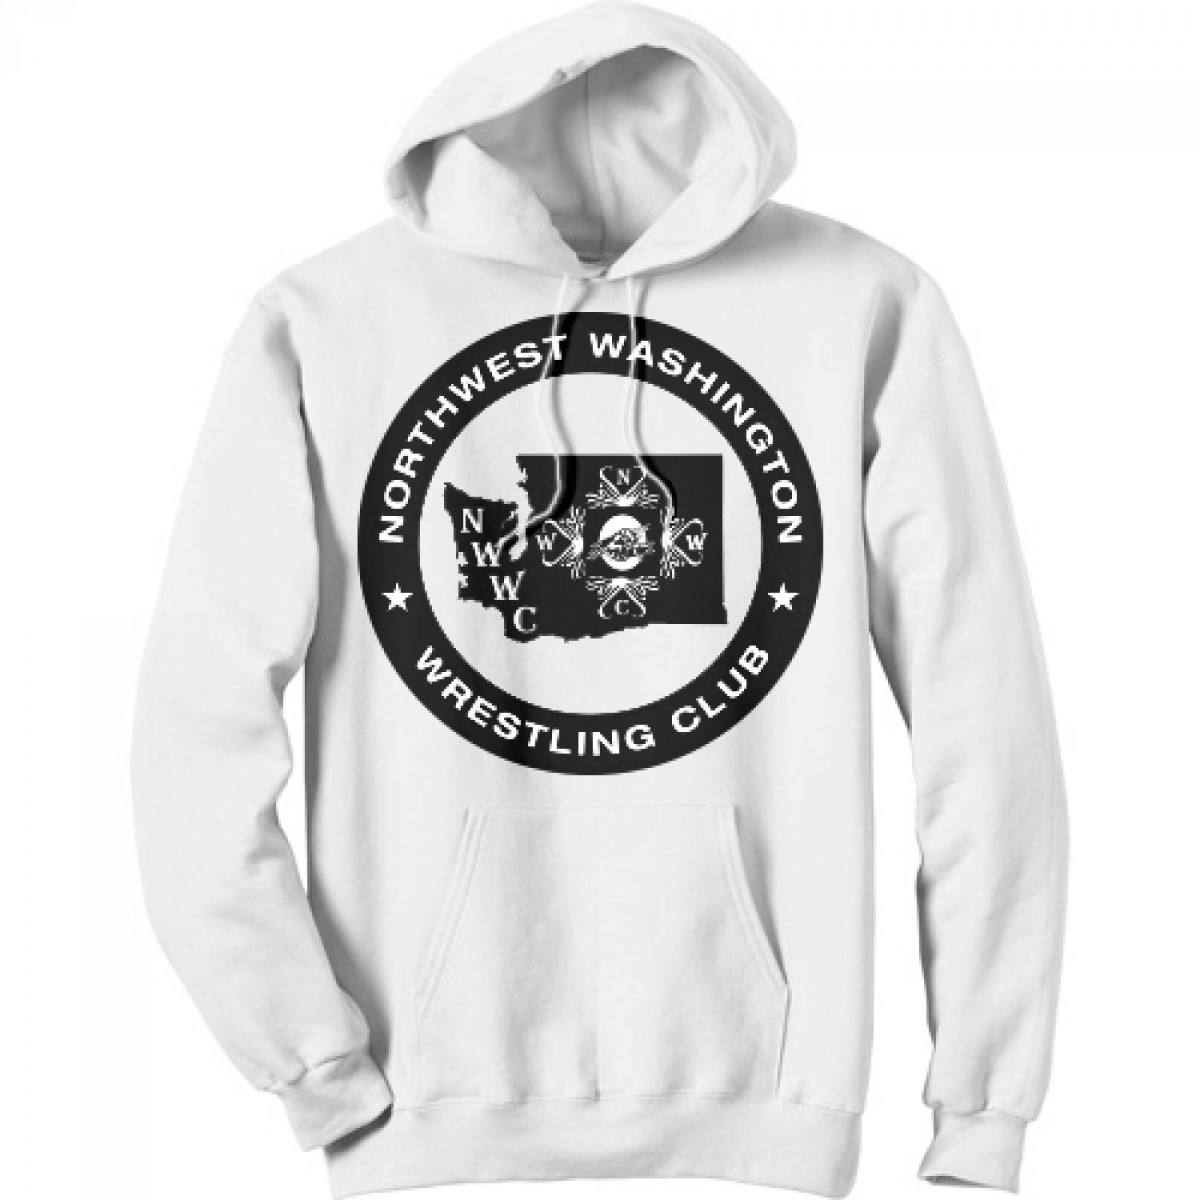 NWWC white hoodie with the main logo in black